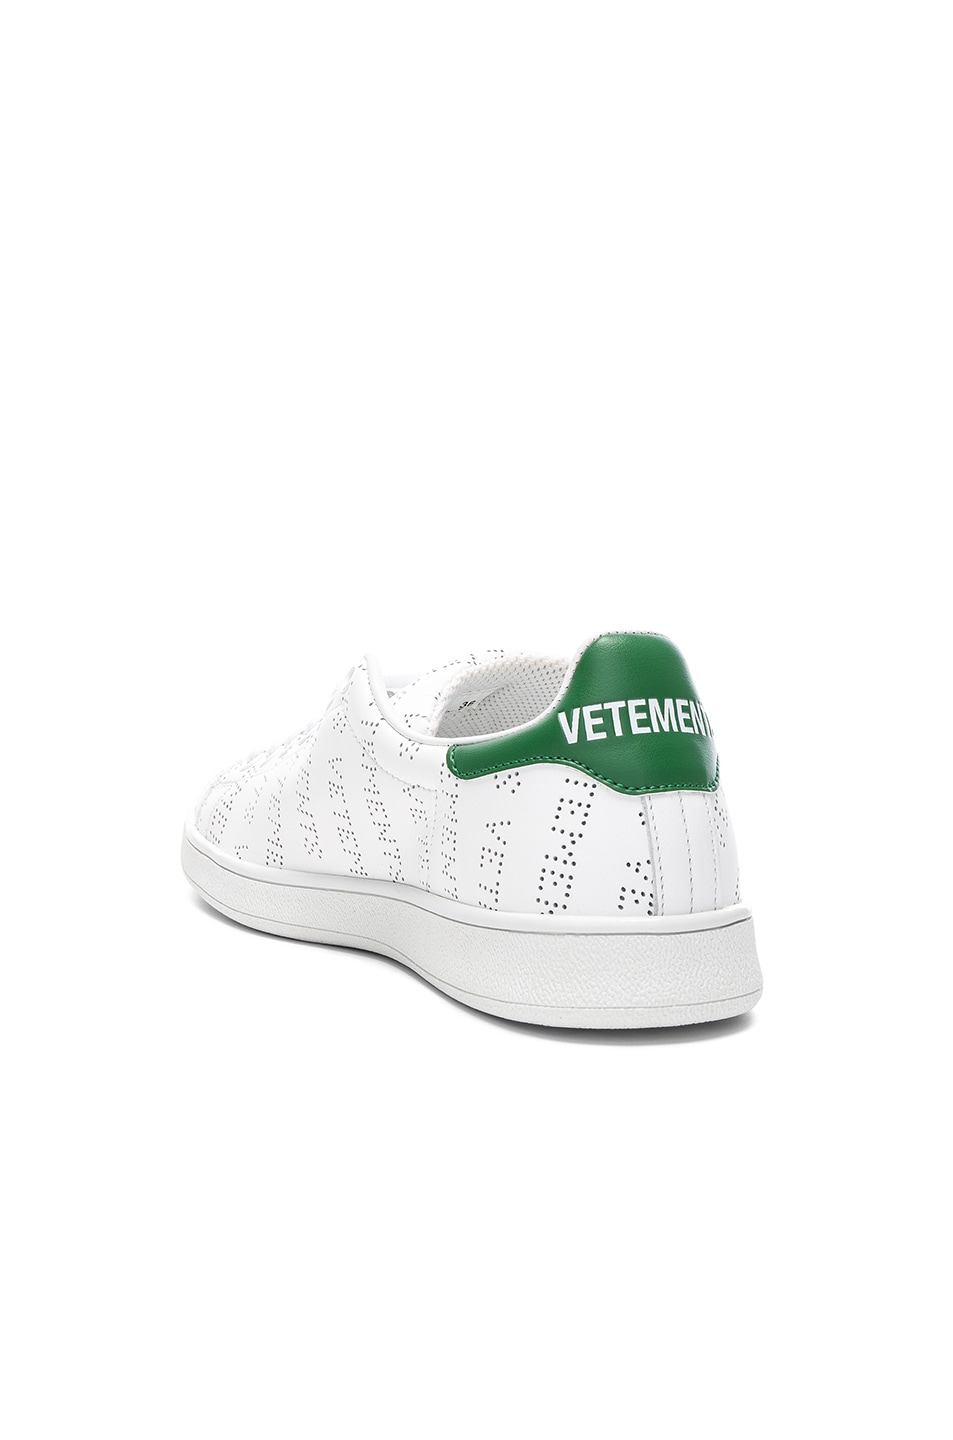 Image 3 of VETEMENTS Perforated Sneakers in White & Green